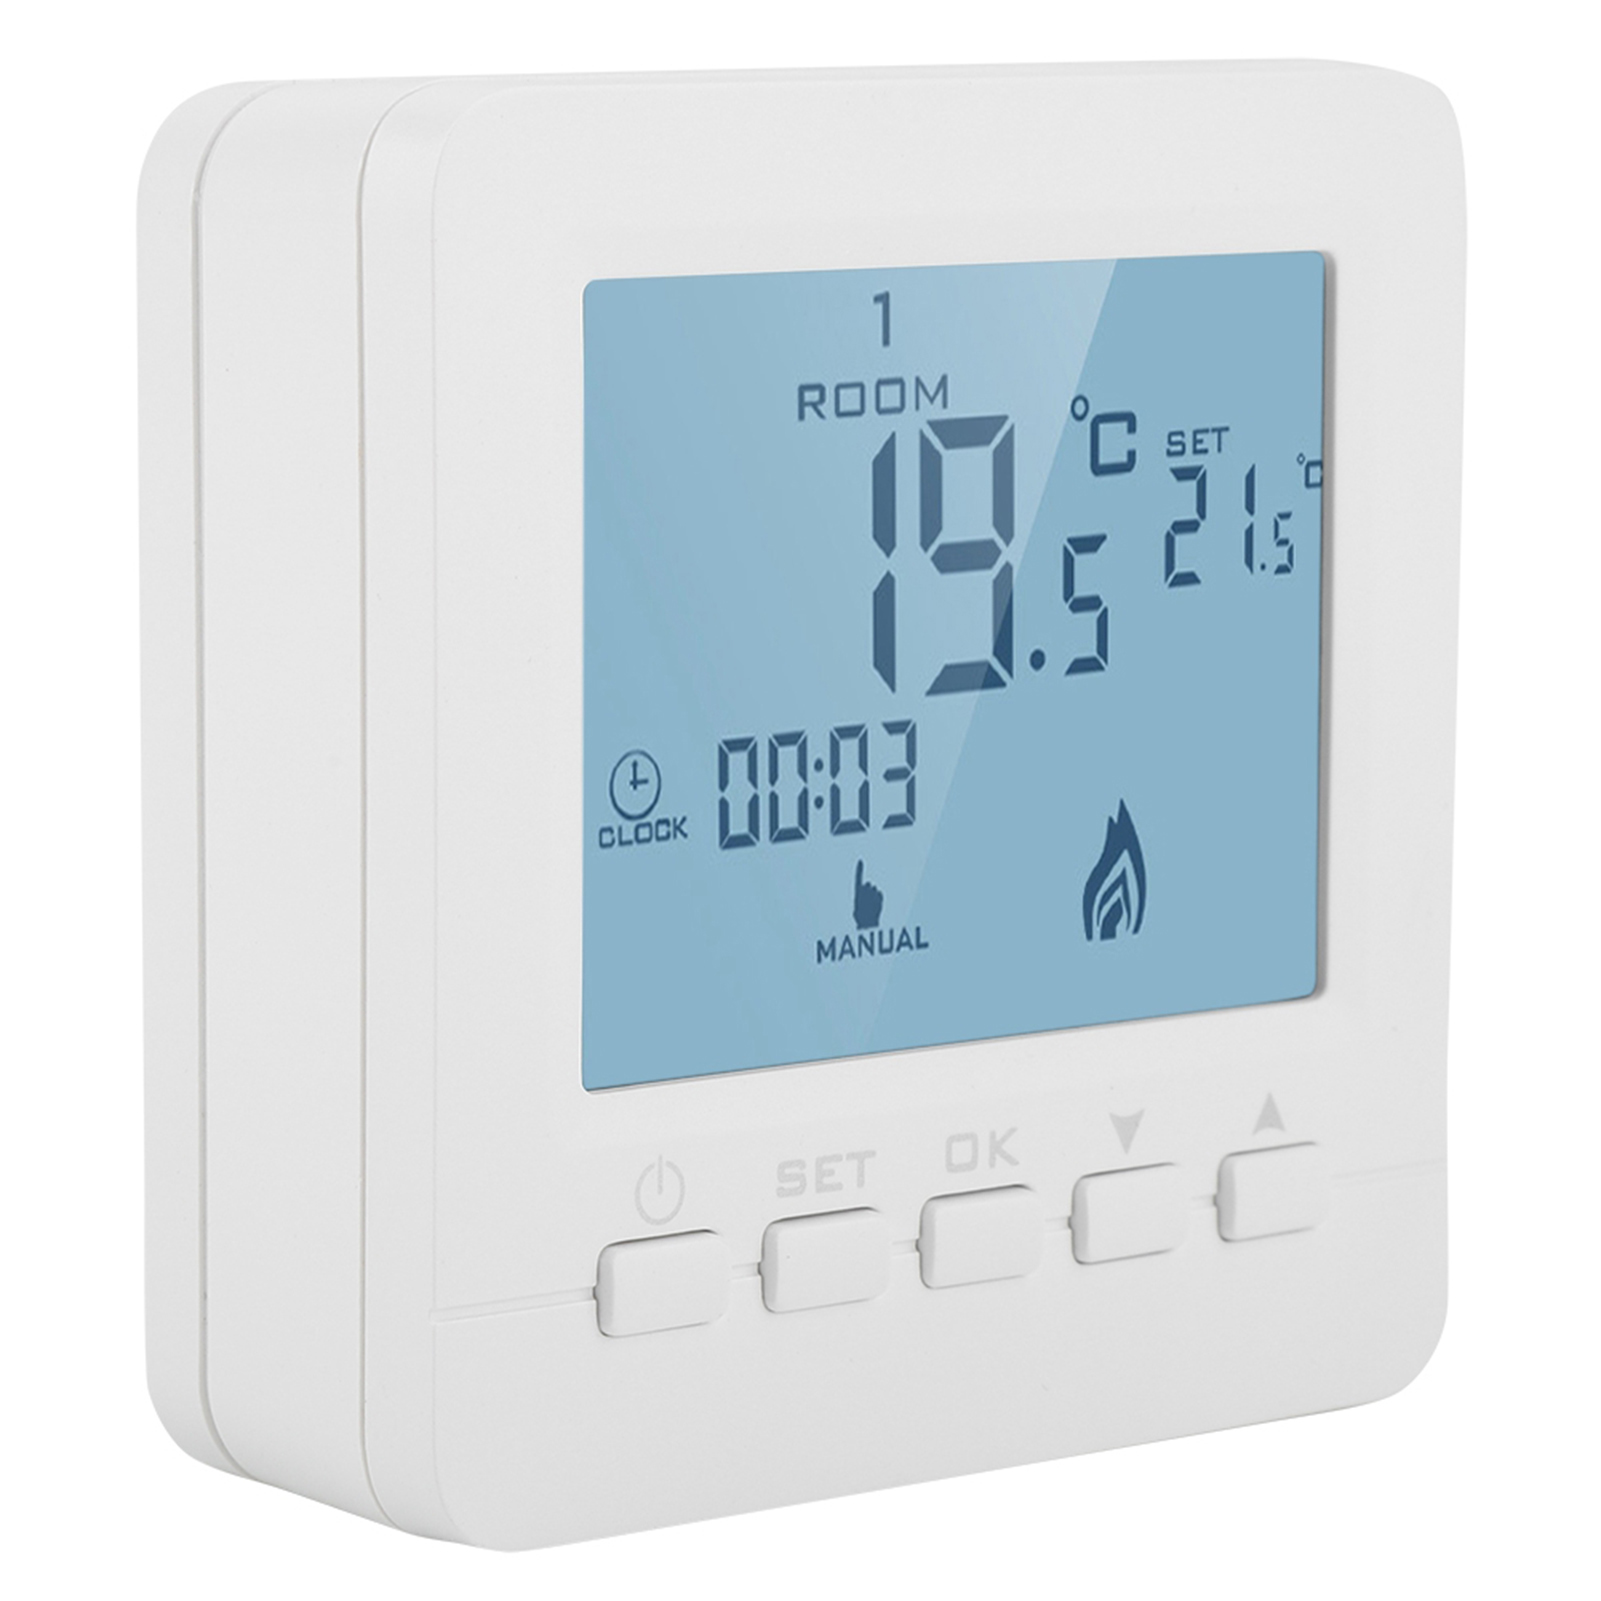 Programmable-WiFi-Smart-Touch-Room-Thermostat-Temperature-Controller-APP-Control thumbnail 18